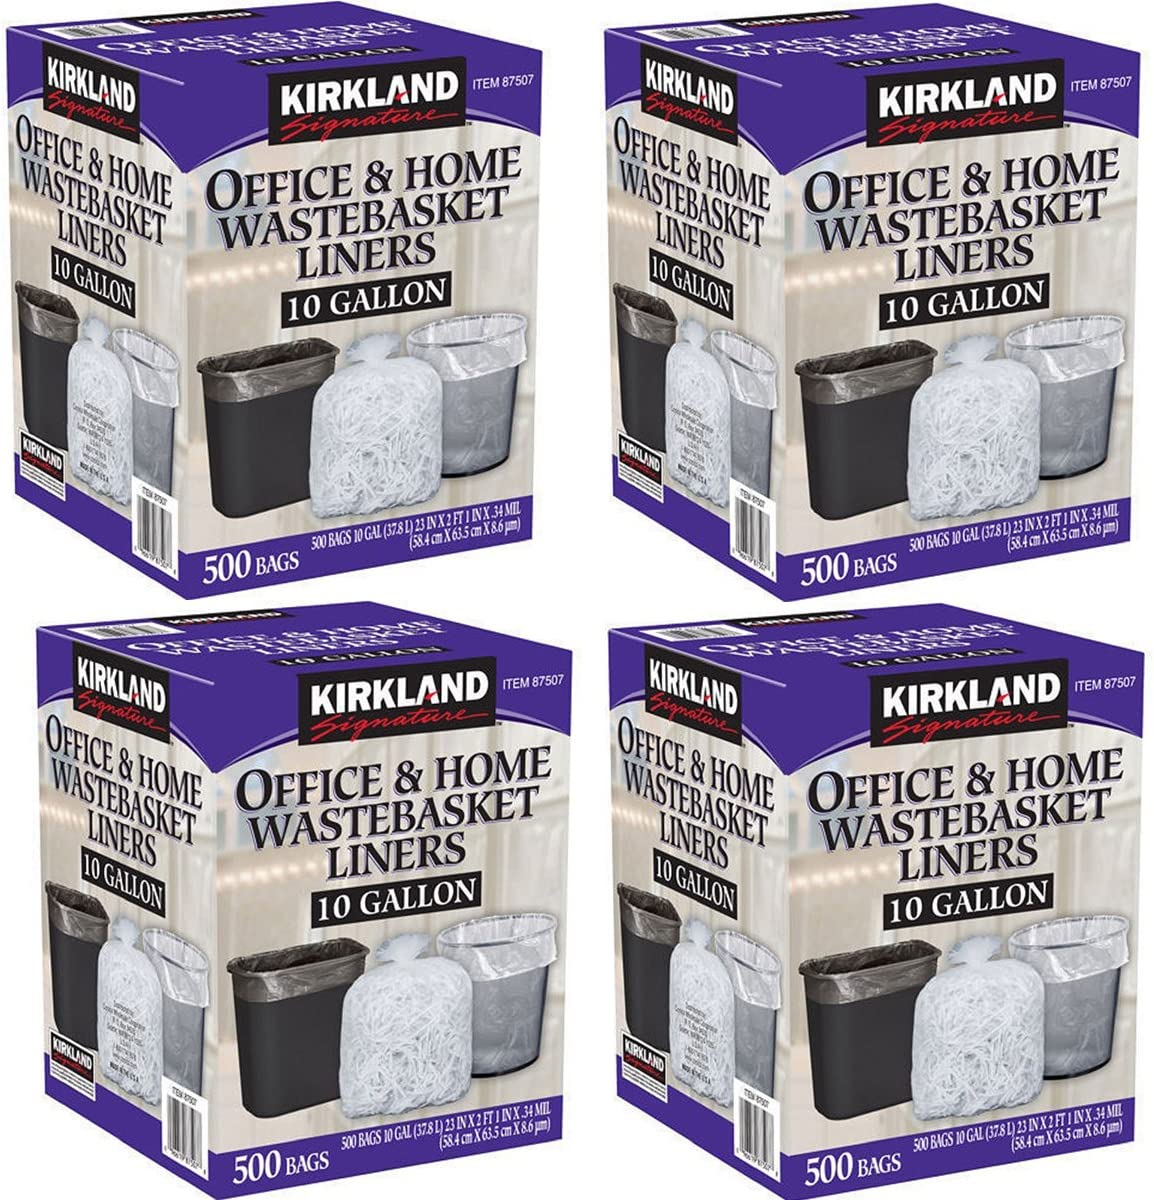 Kirkland Limited price Signature El Paso Mall Made in USA Wastebasket Liner Gallon Clear 10